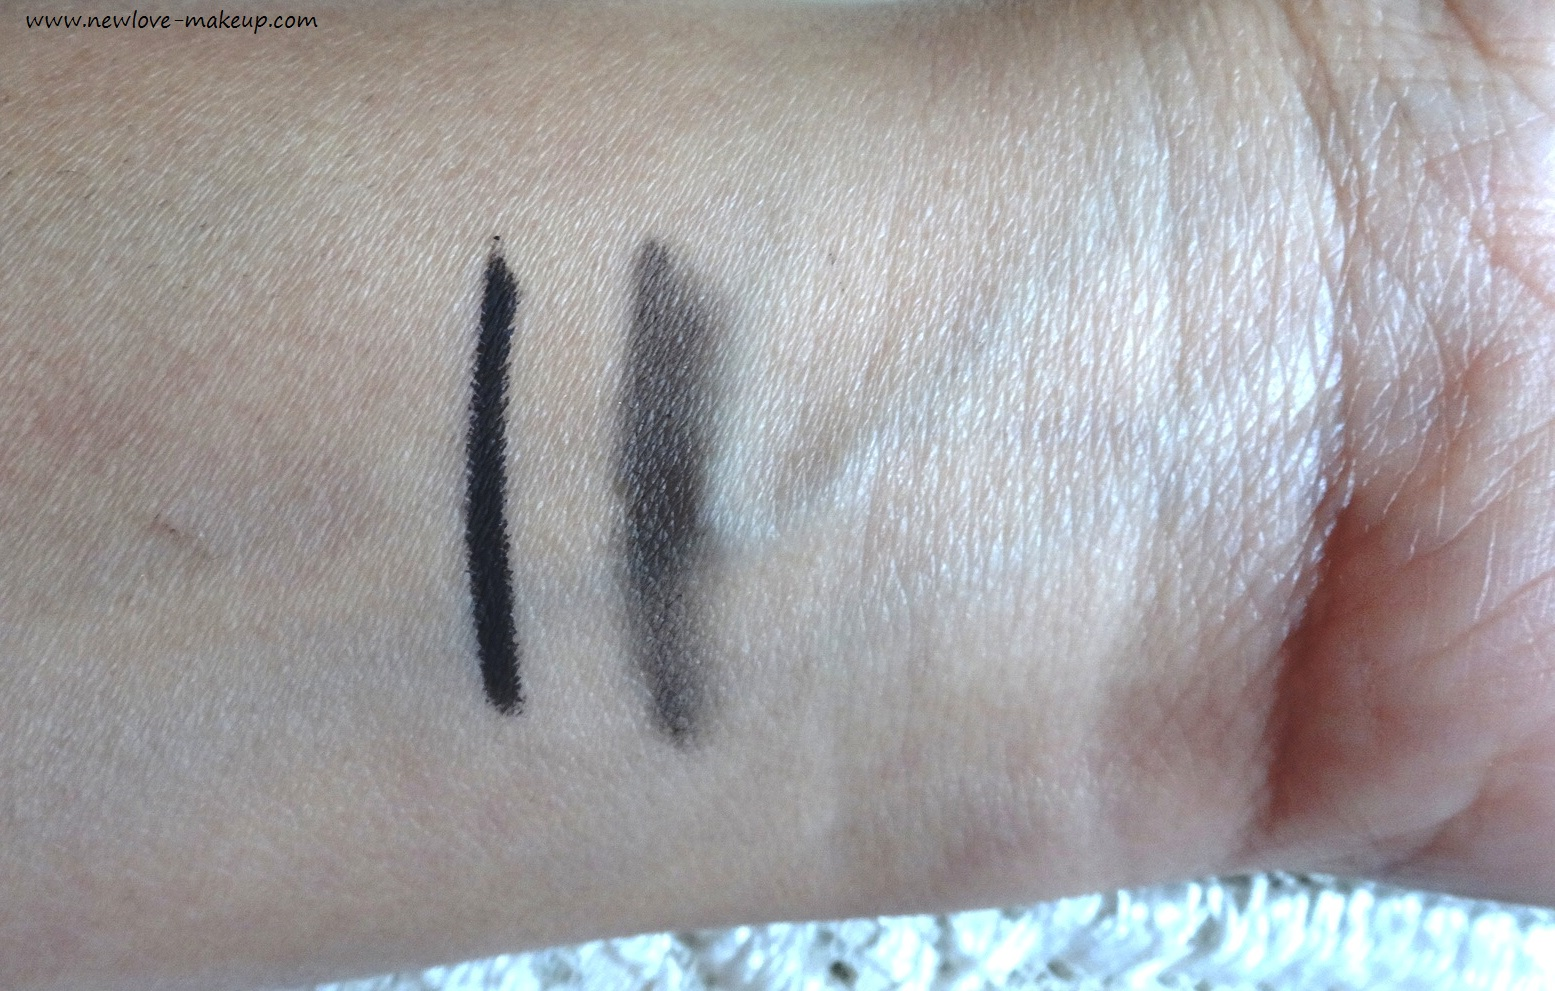 RIMMEL LONDON Exaggerate Waterproof Eye Definer 26 Noir Review, Swatches